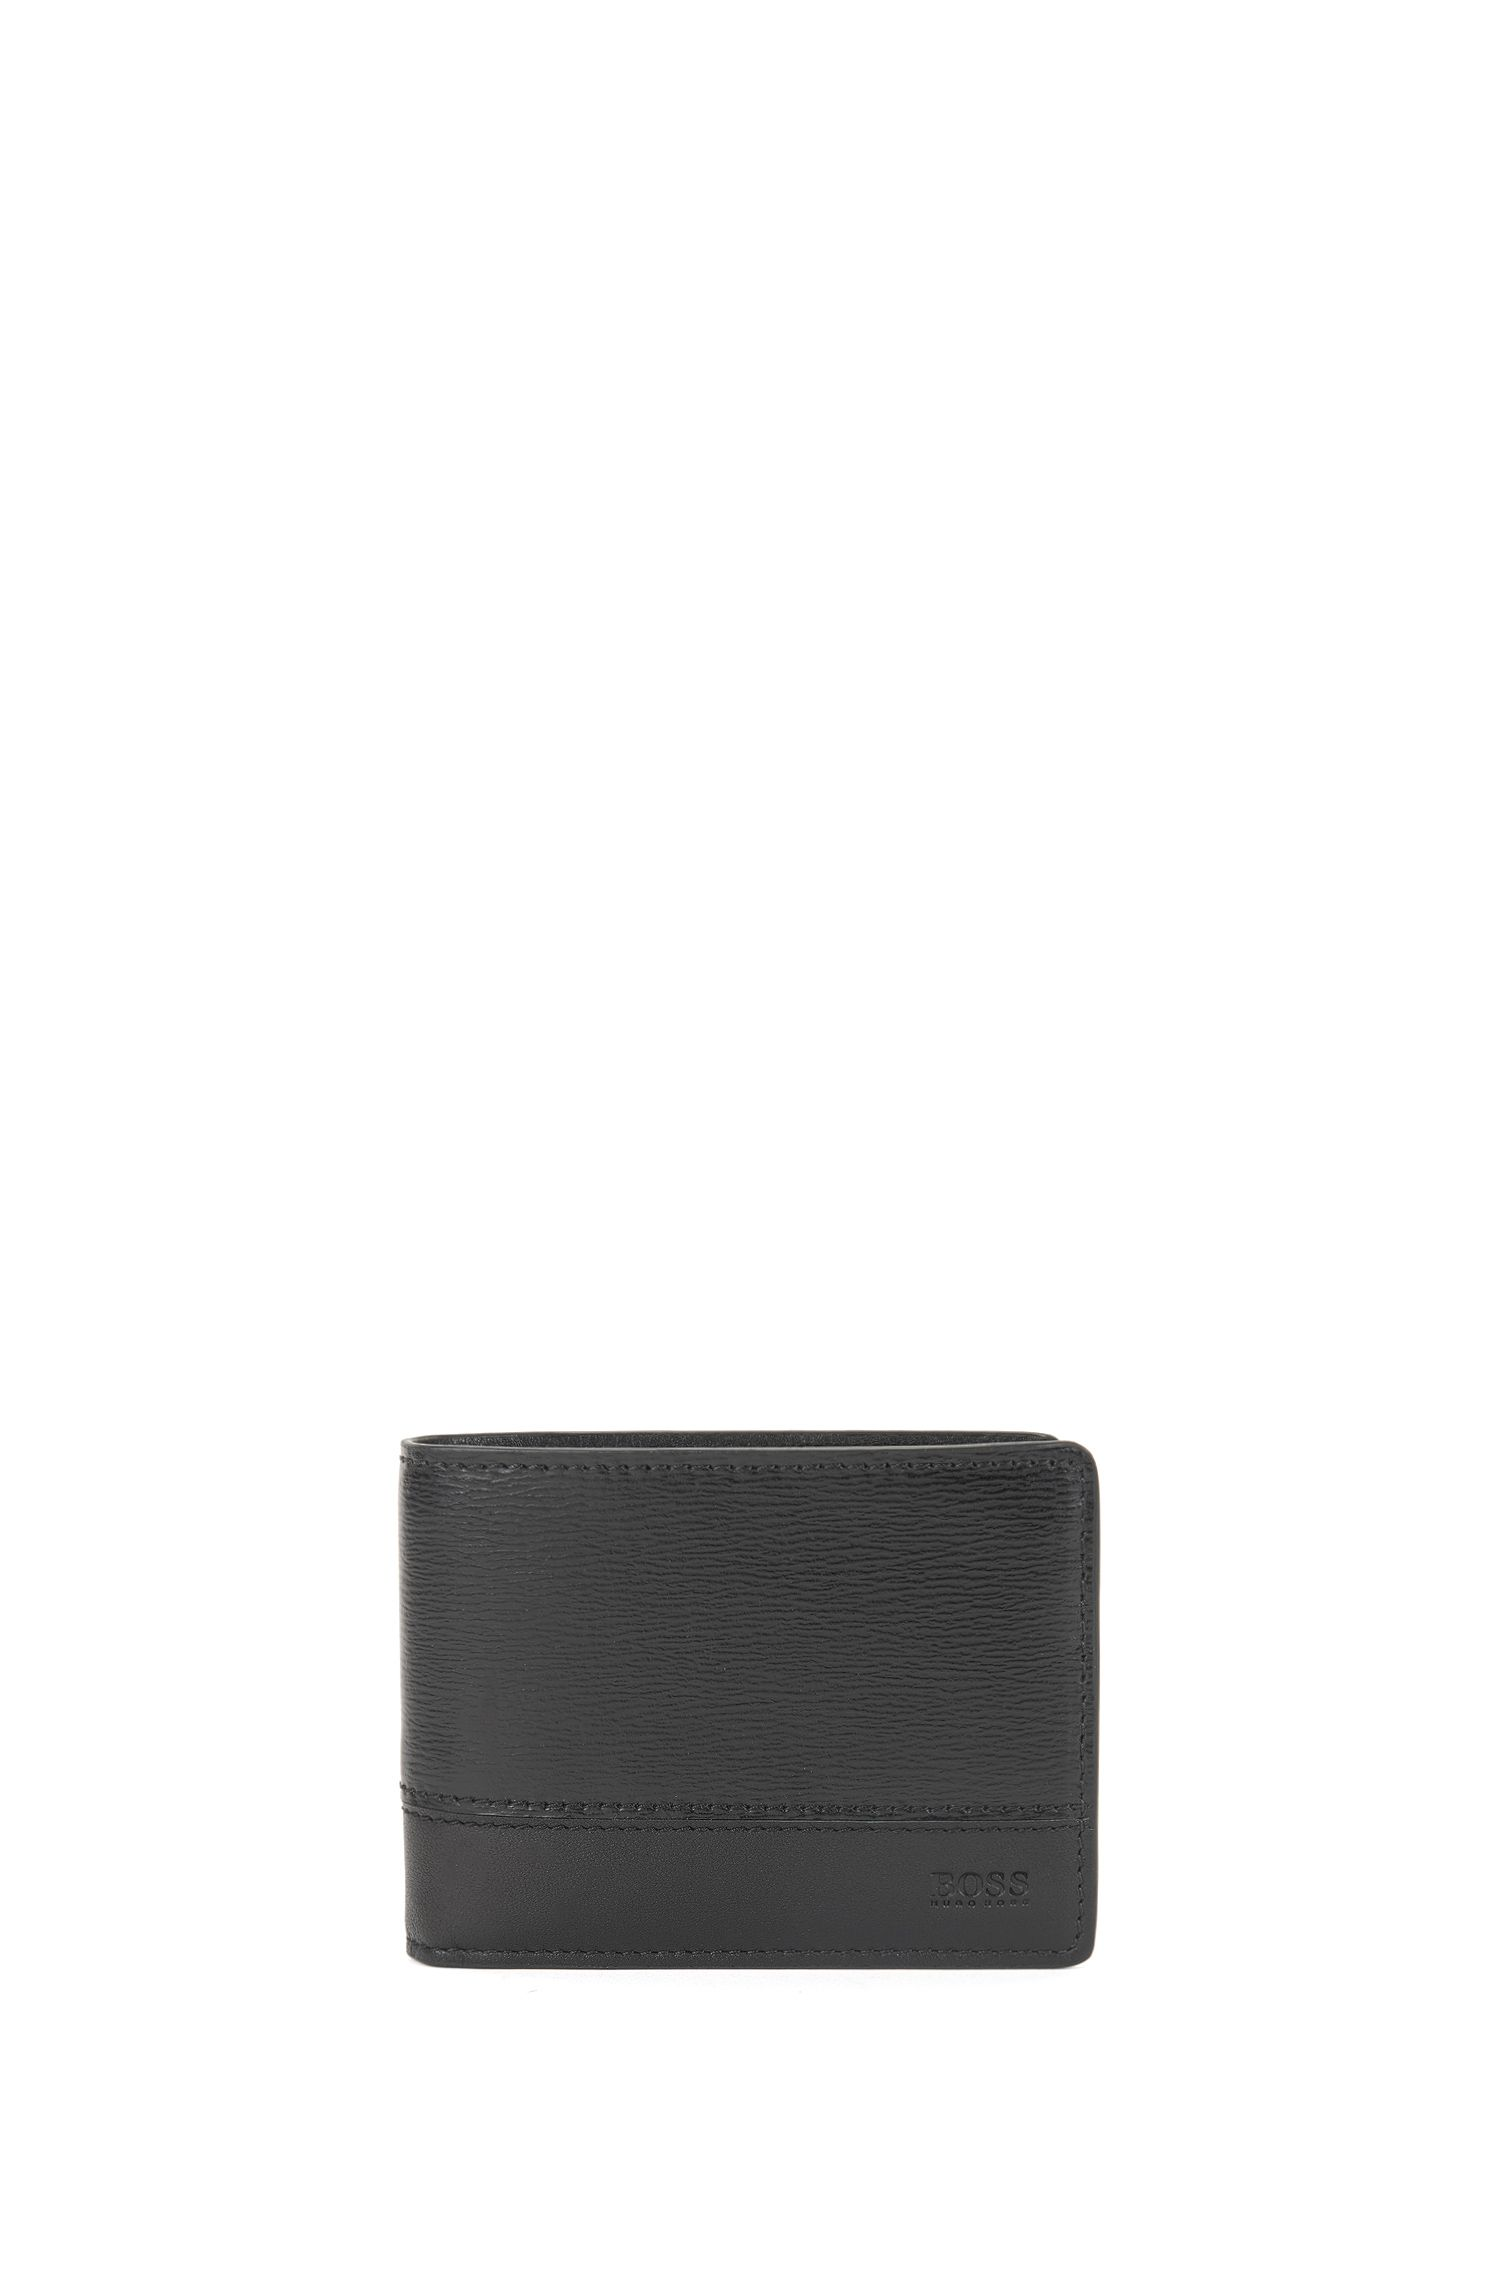 Leather Billfold Wallet | Focus 6 cc